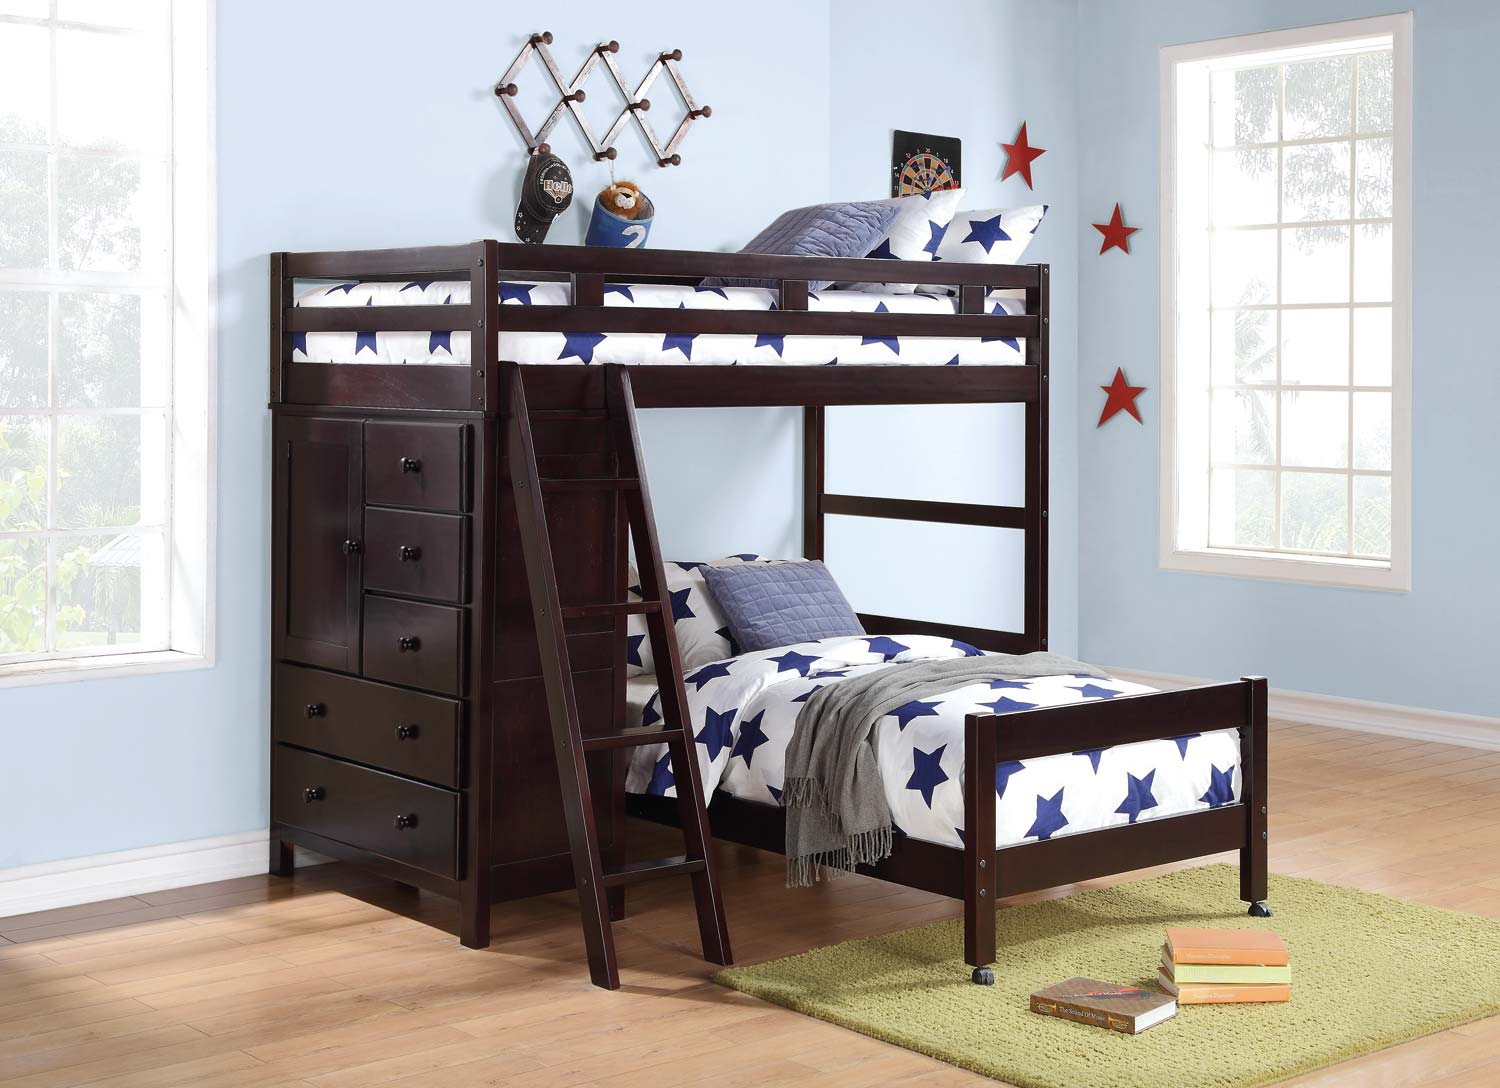 Homelegance Tops Twin/Twin Loft Bed with Storages - Dark Cherry